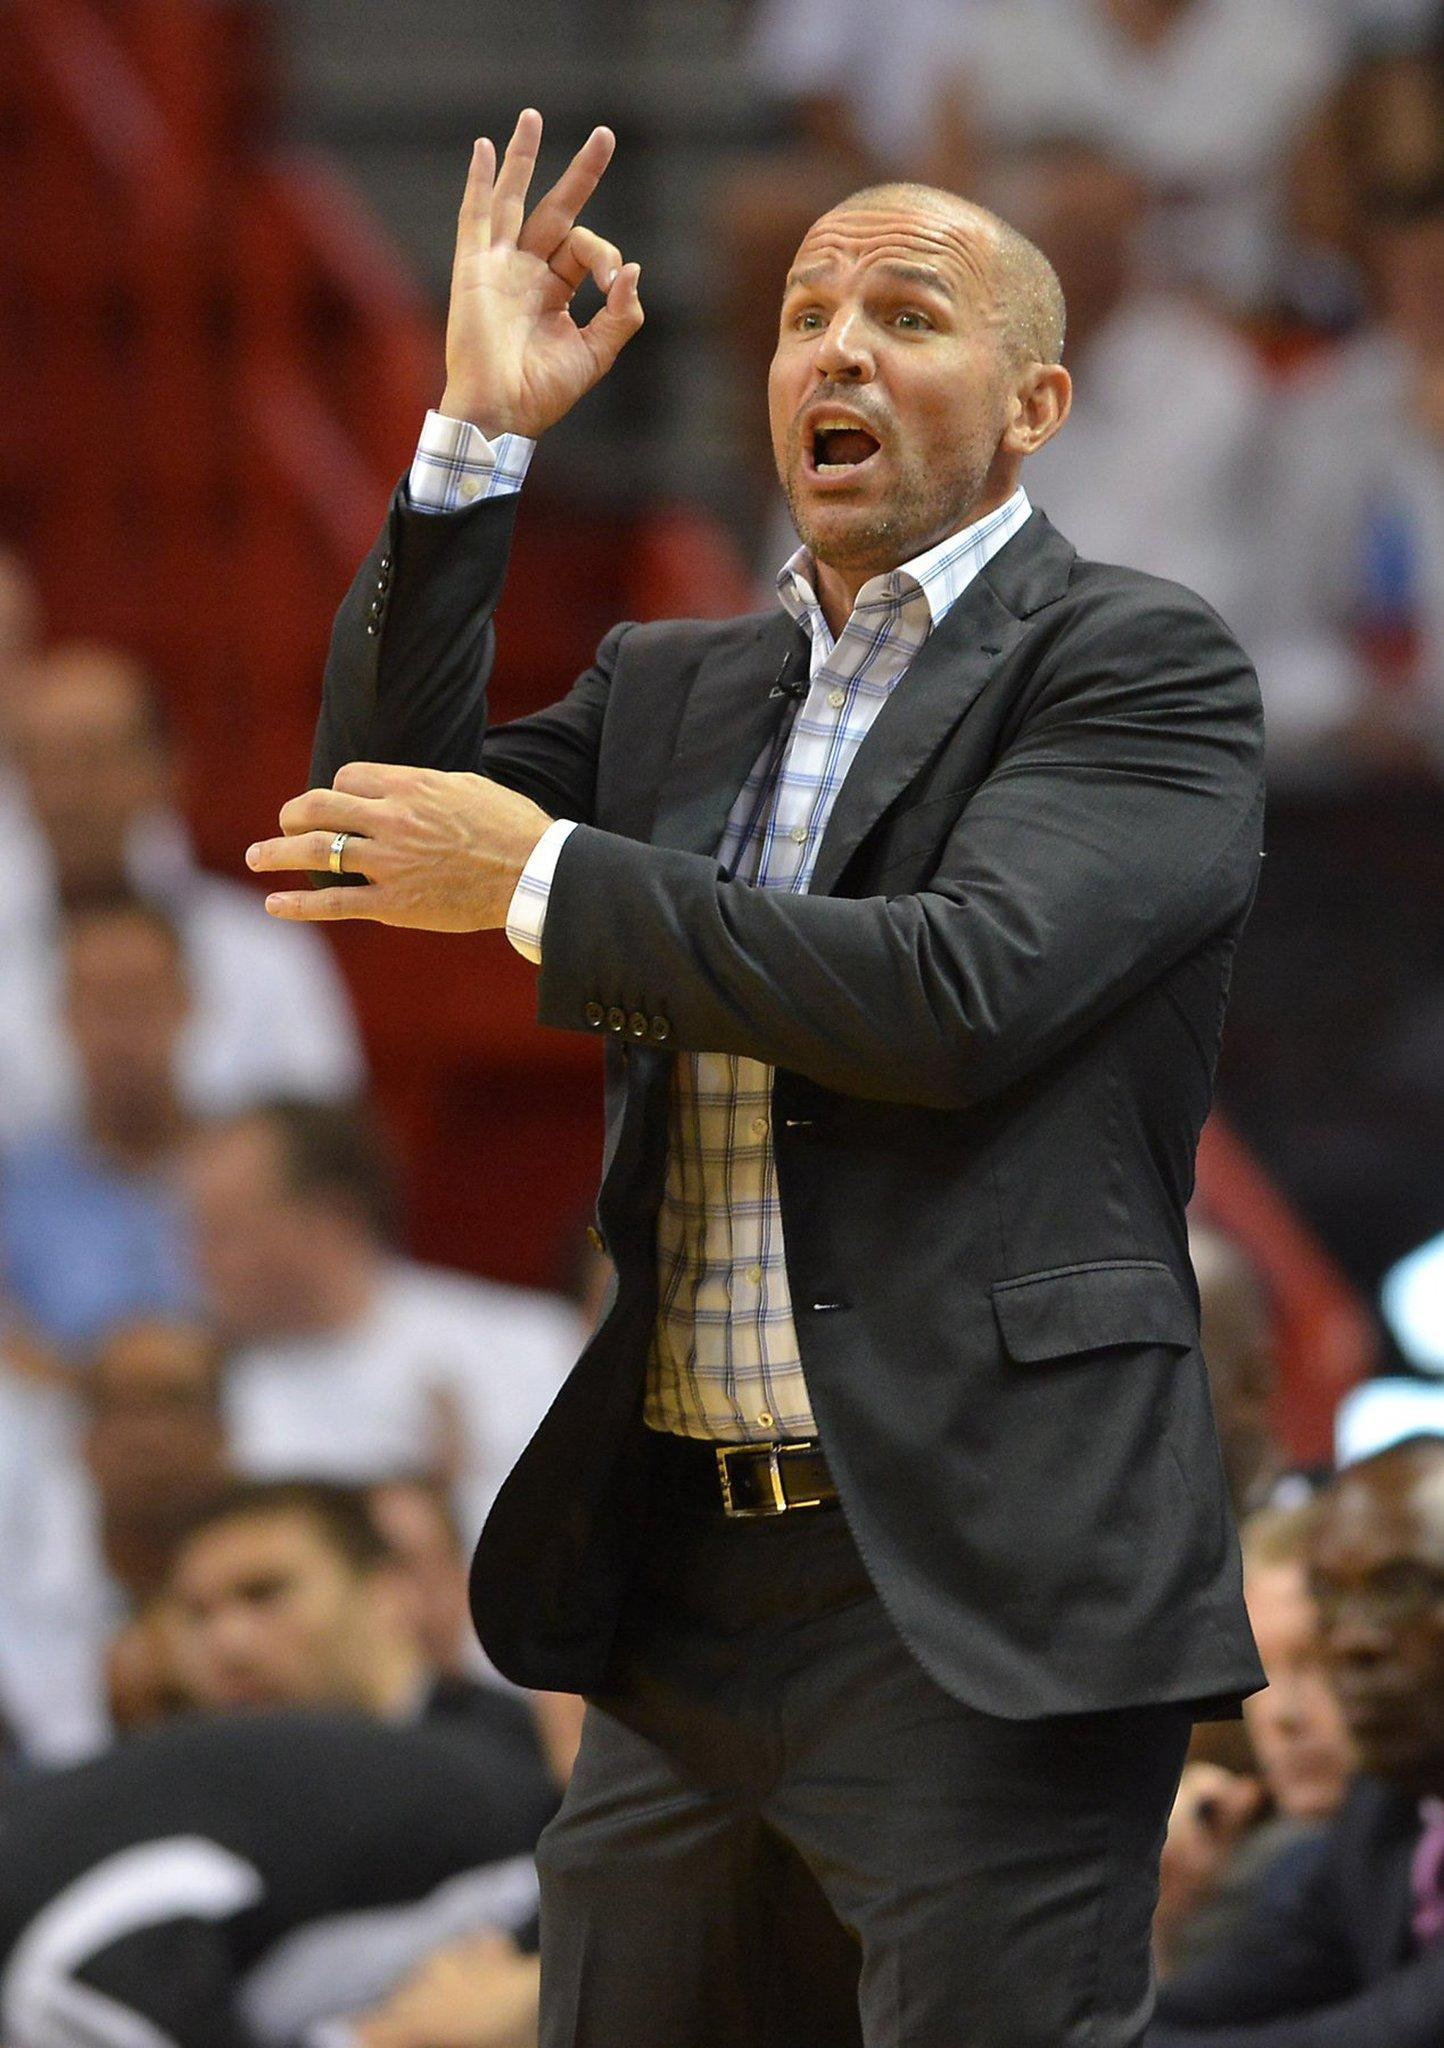 Nets coach Jason Kidd makes calls in the third quarter during Game 2 of Eastern Conference semifinals against the Heat.